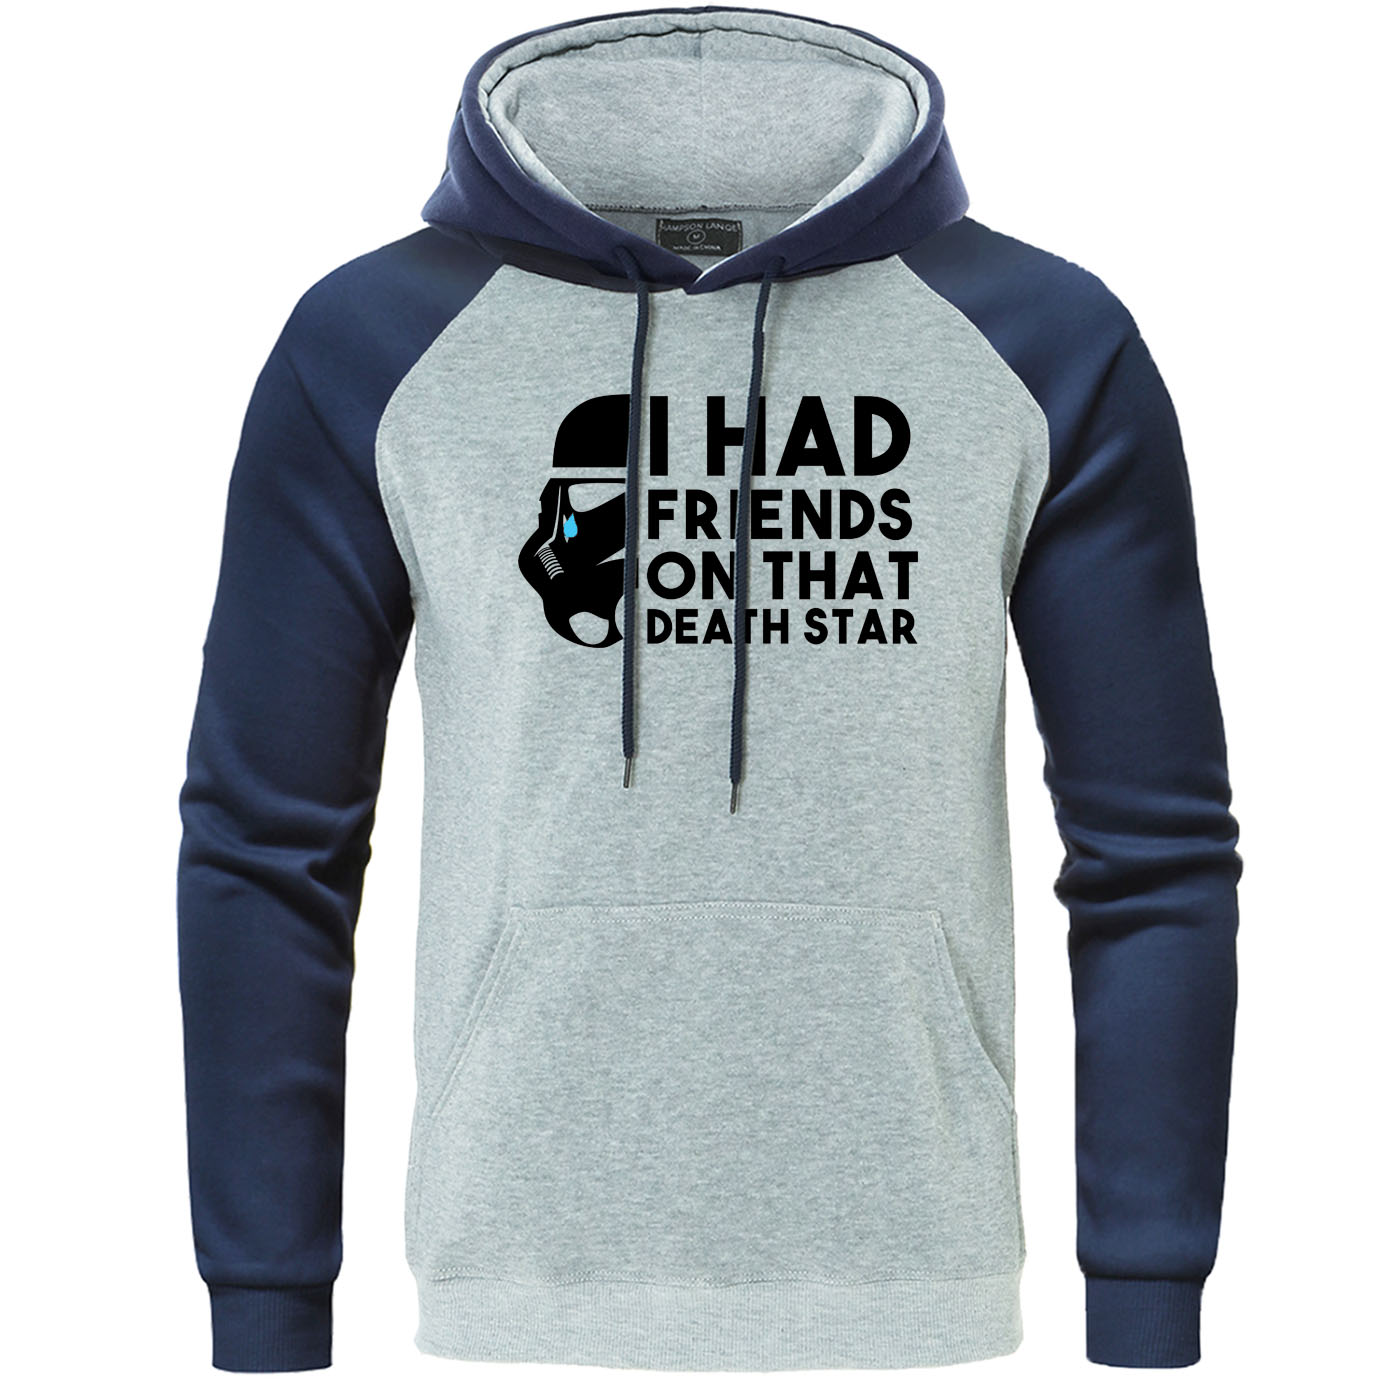 Star Wars Raglan Mens Hoodies I Had Friends On That Death Star Letter Print Hooded Sweatshirt Autumn Pullover Brand Men Clothing